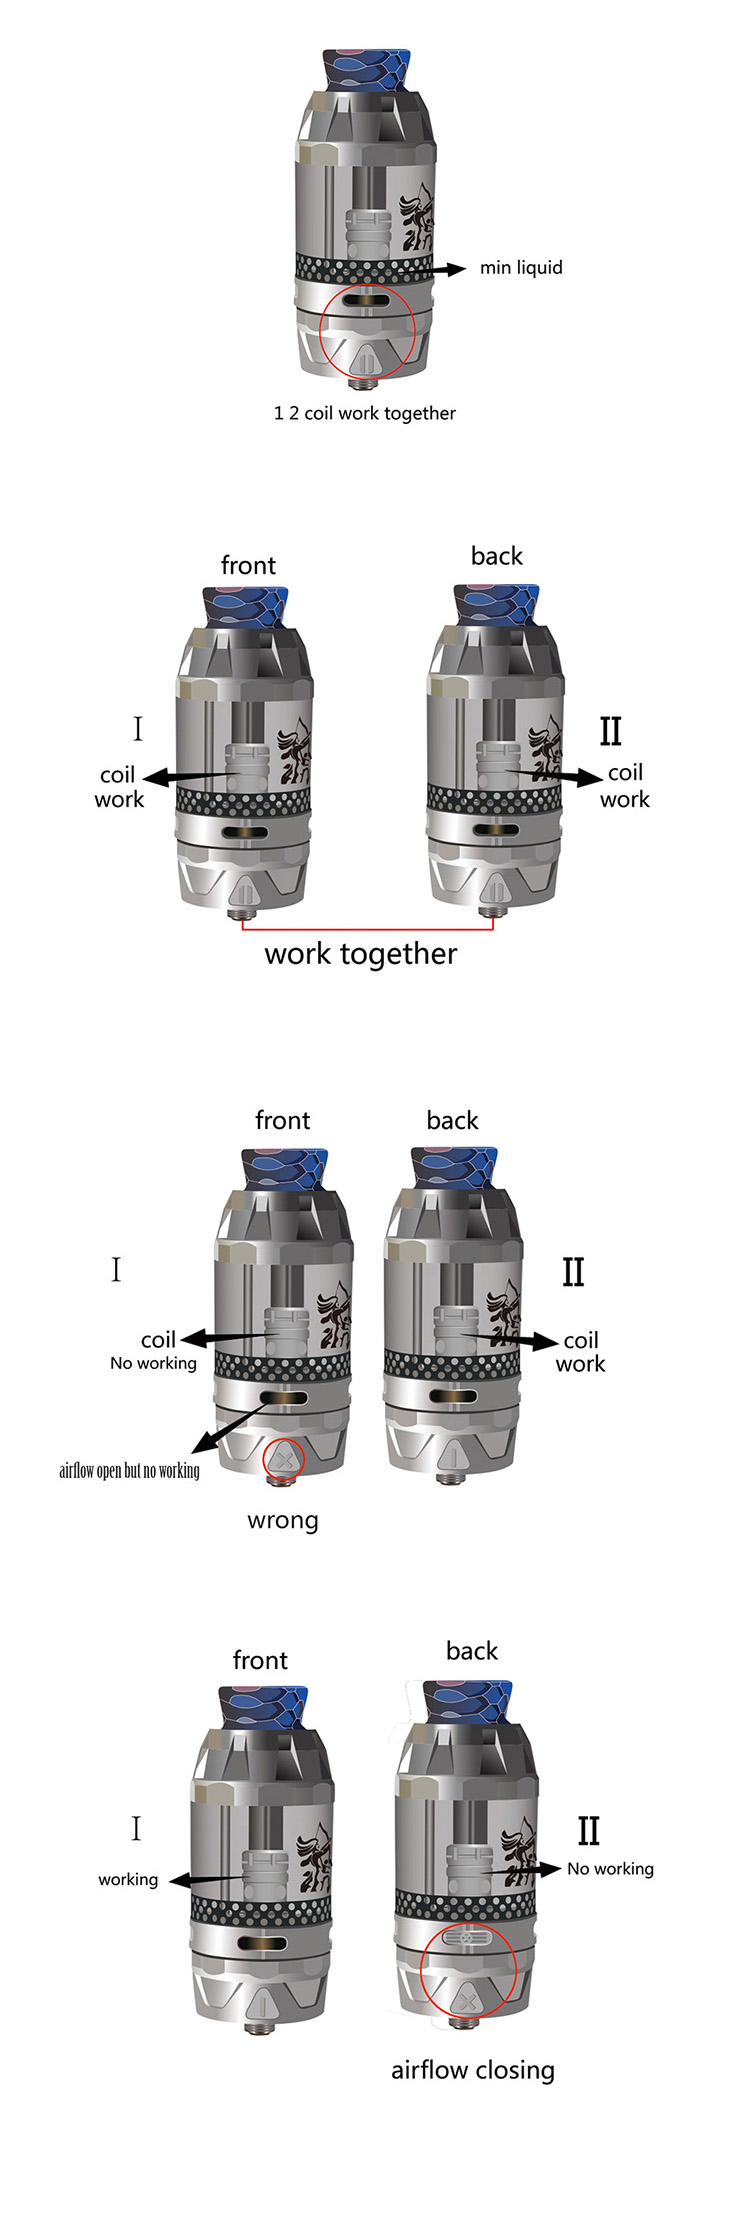 HENGLING Qtank Dual Flavor Subohm Tank Operation Guide